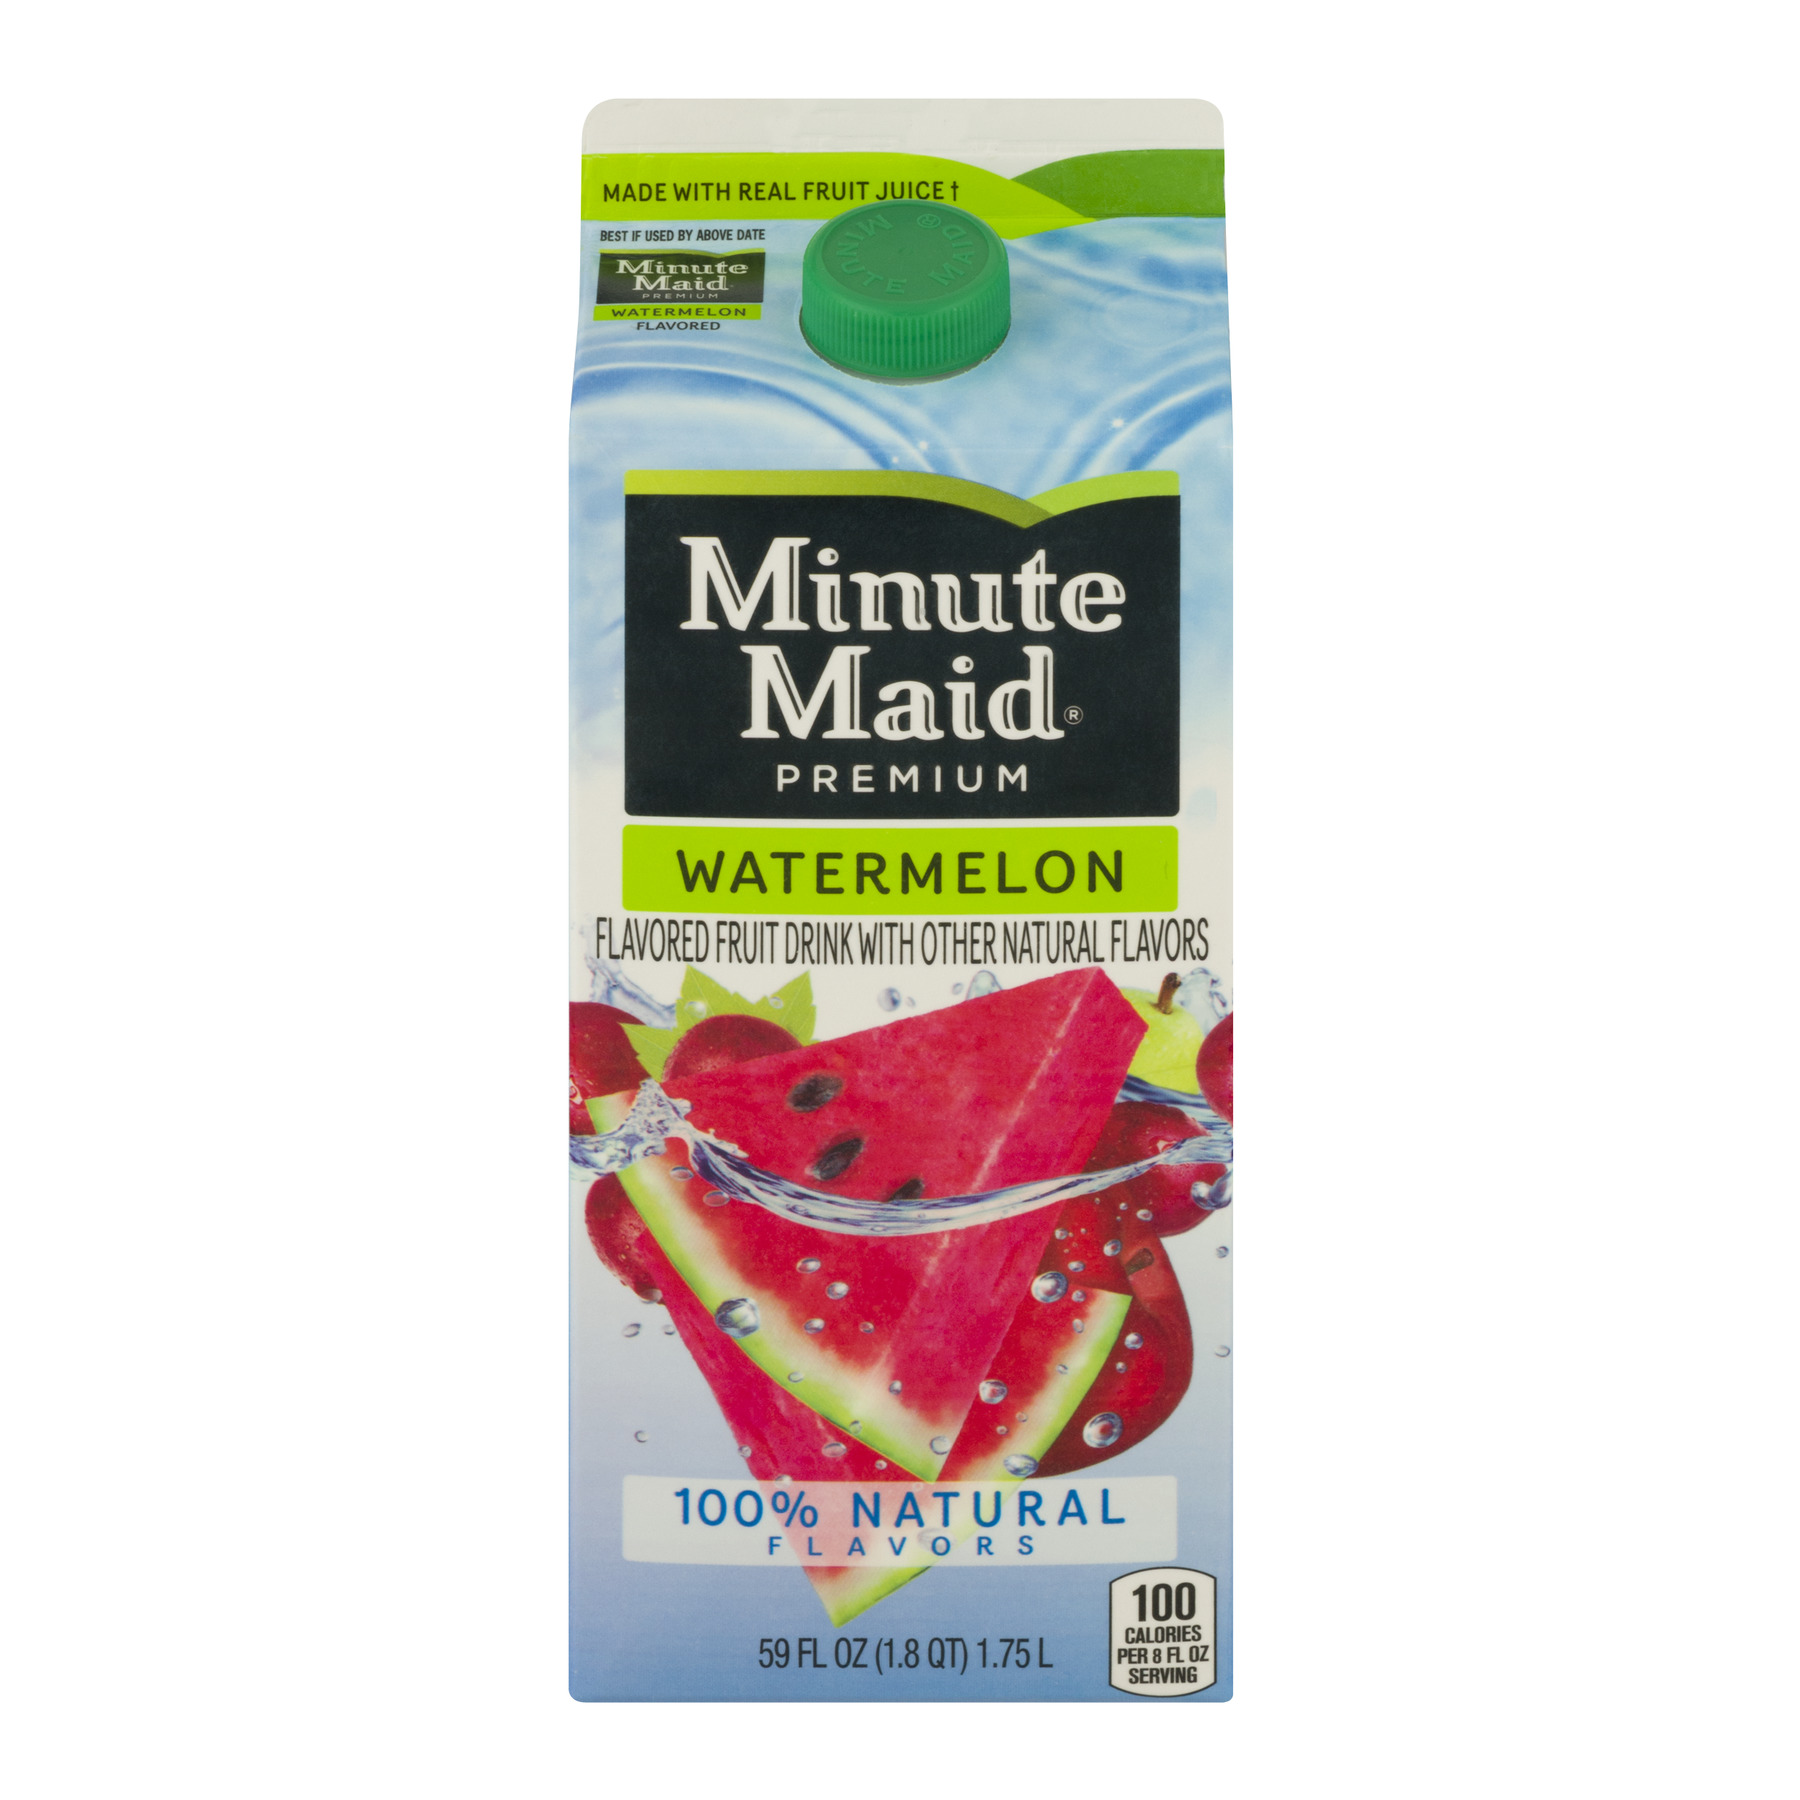 Minute Maid Premium Fruit Drink Watermelon, 59.0 FL OZ